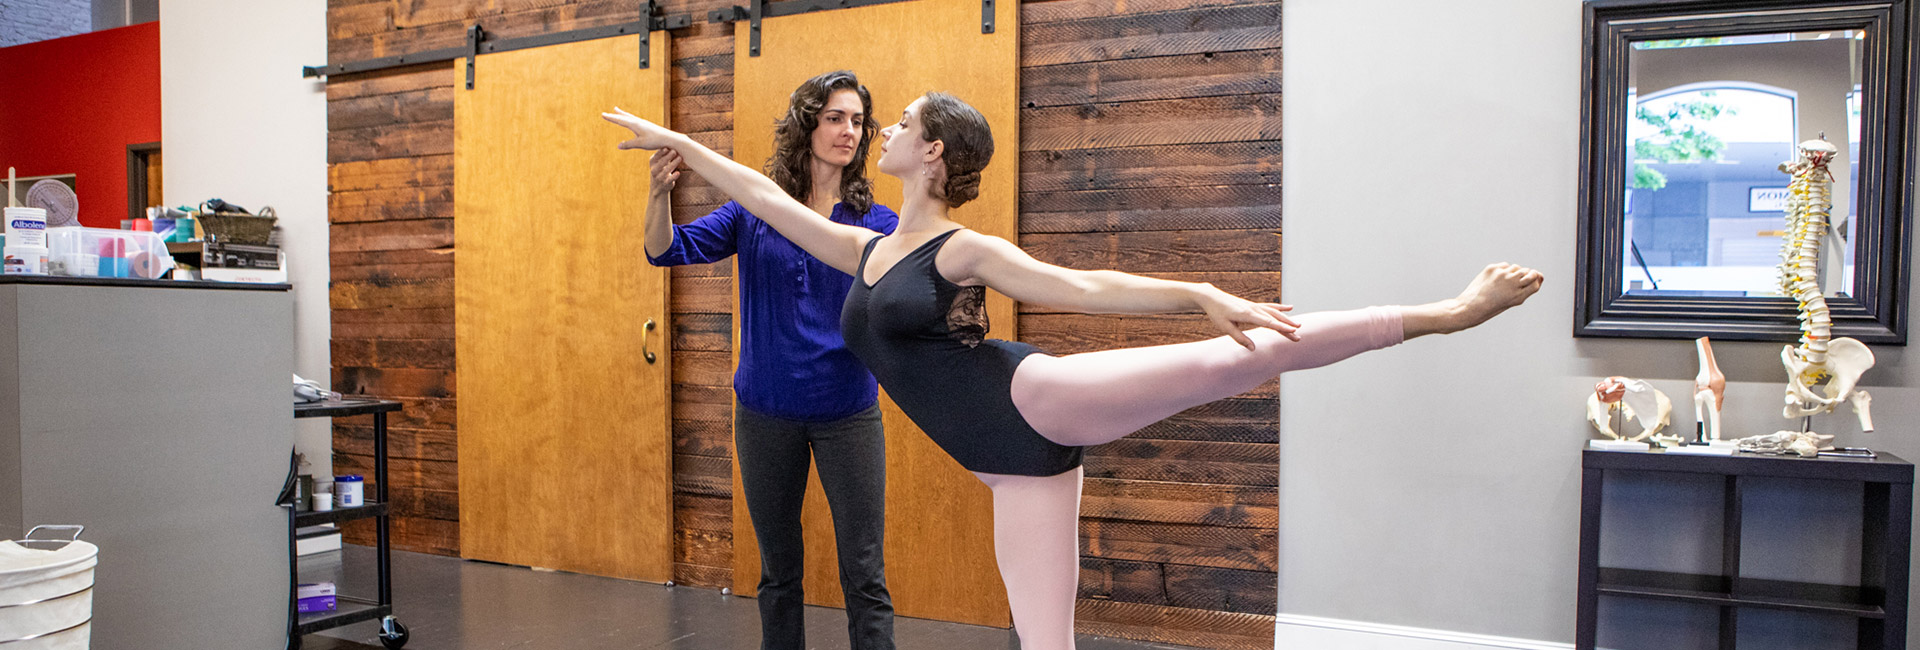 Dance-Medicine-and-Therapy-Services---Therapeutic-Associates-Physical-Therapy